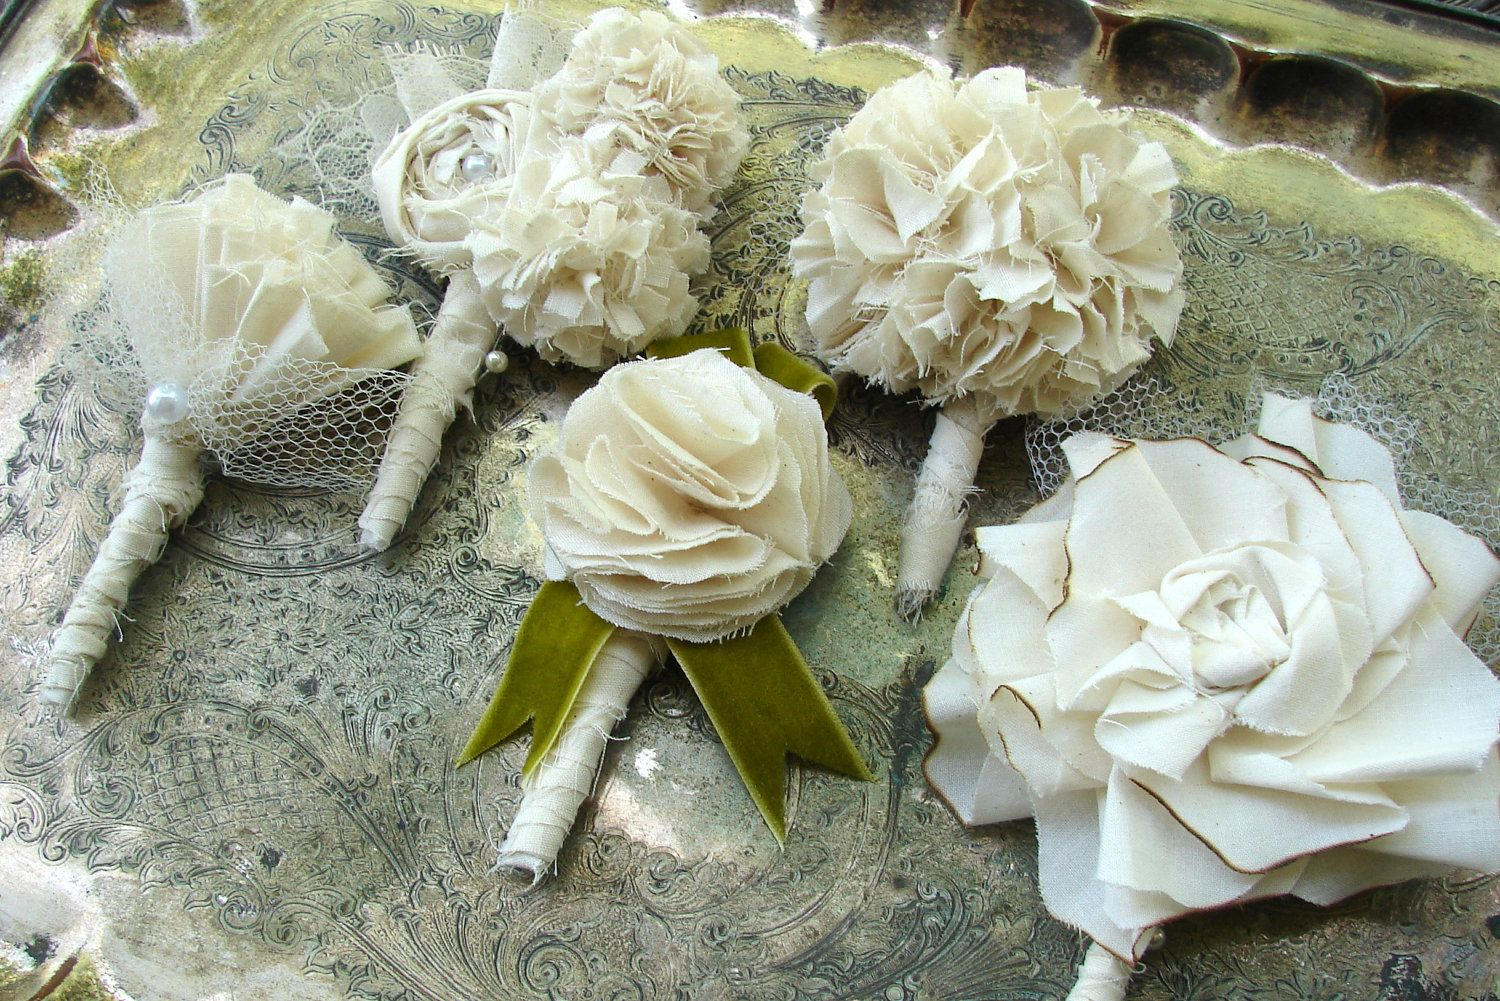 Fabric Flower Boutonniere - Wedding, Vintage Wedding - Cotton Rose Boutonniere, Fabric Flower, Fabric Boutonniere. $16.00, via Etsy.